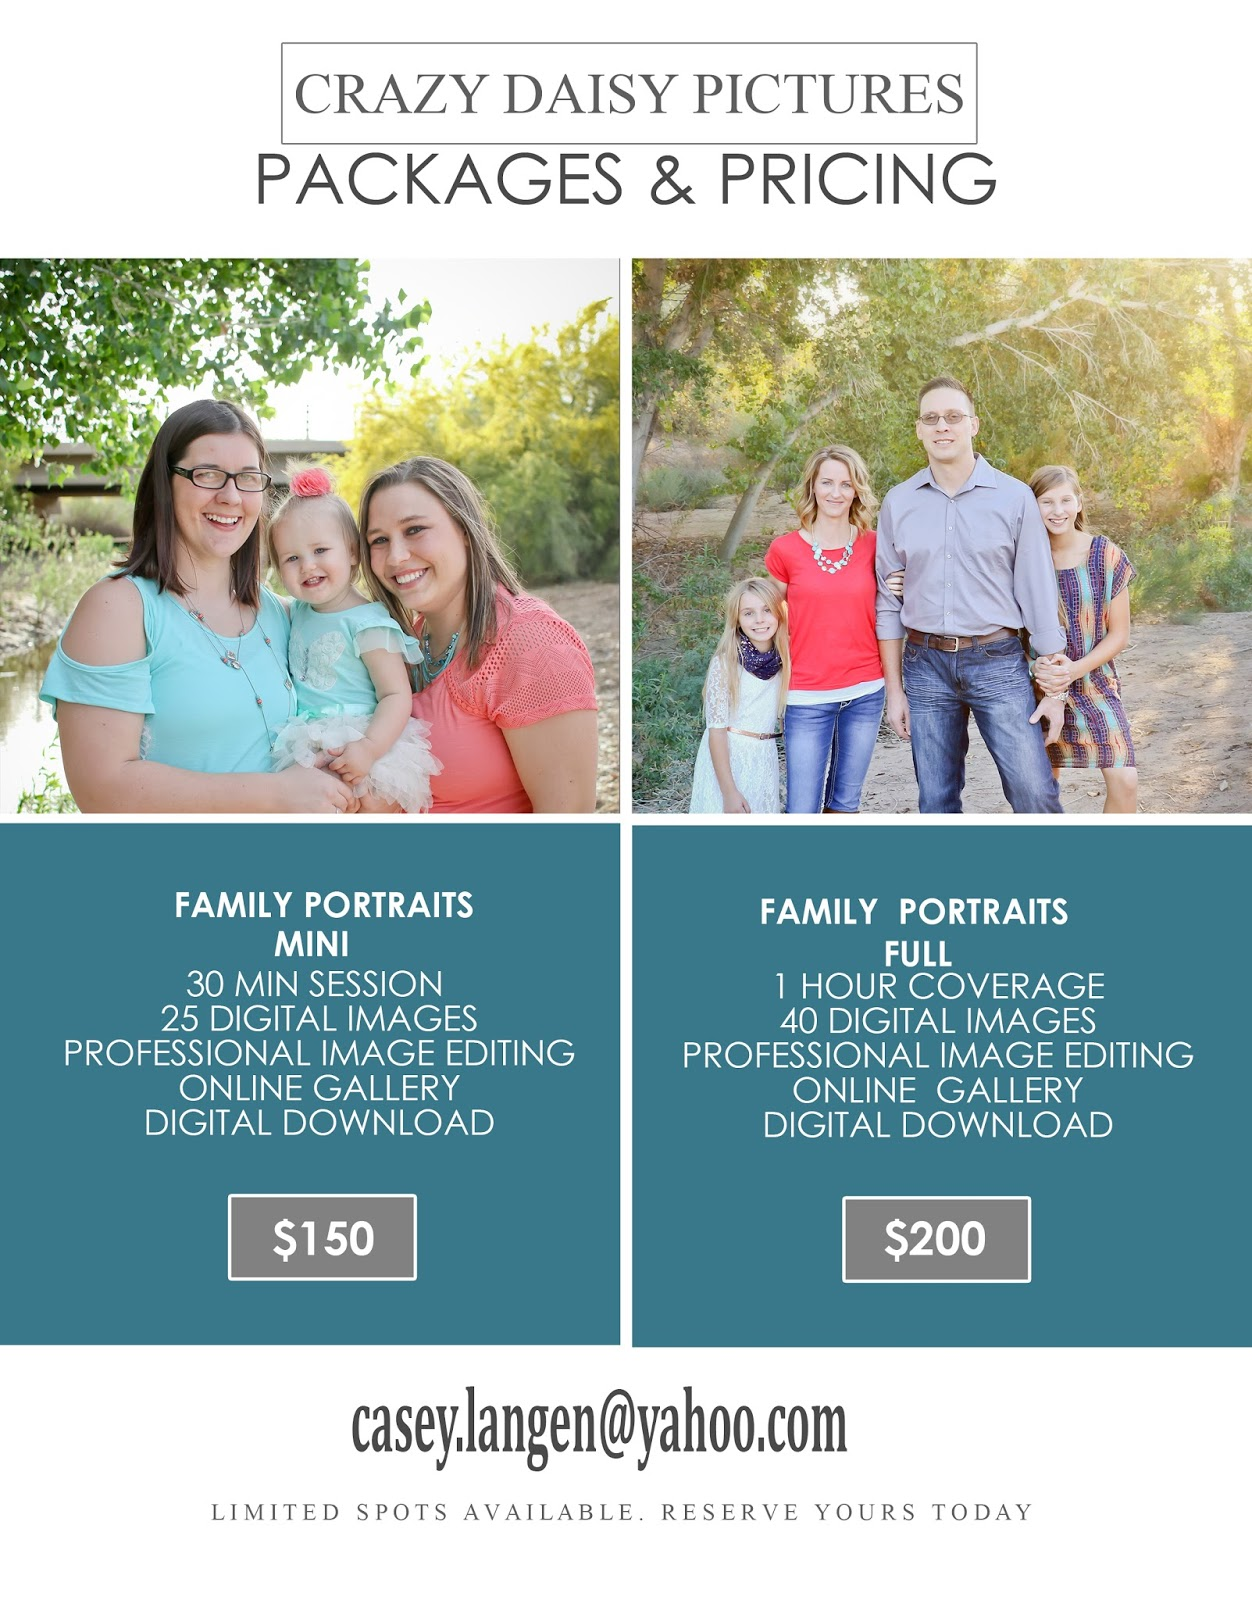 Crazy Daisy Pictures: Pricing Guide